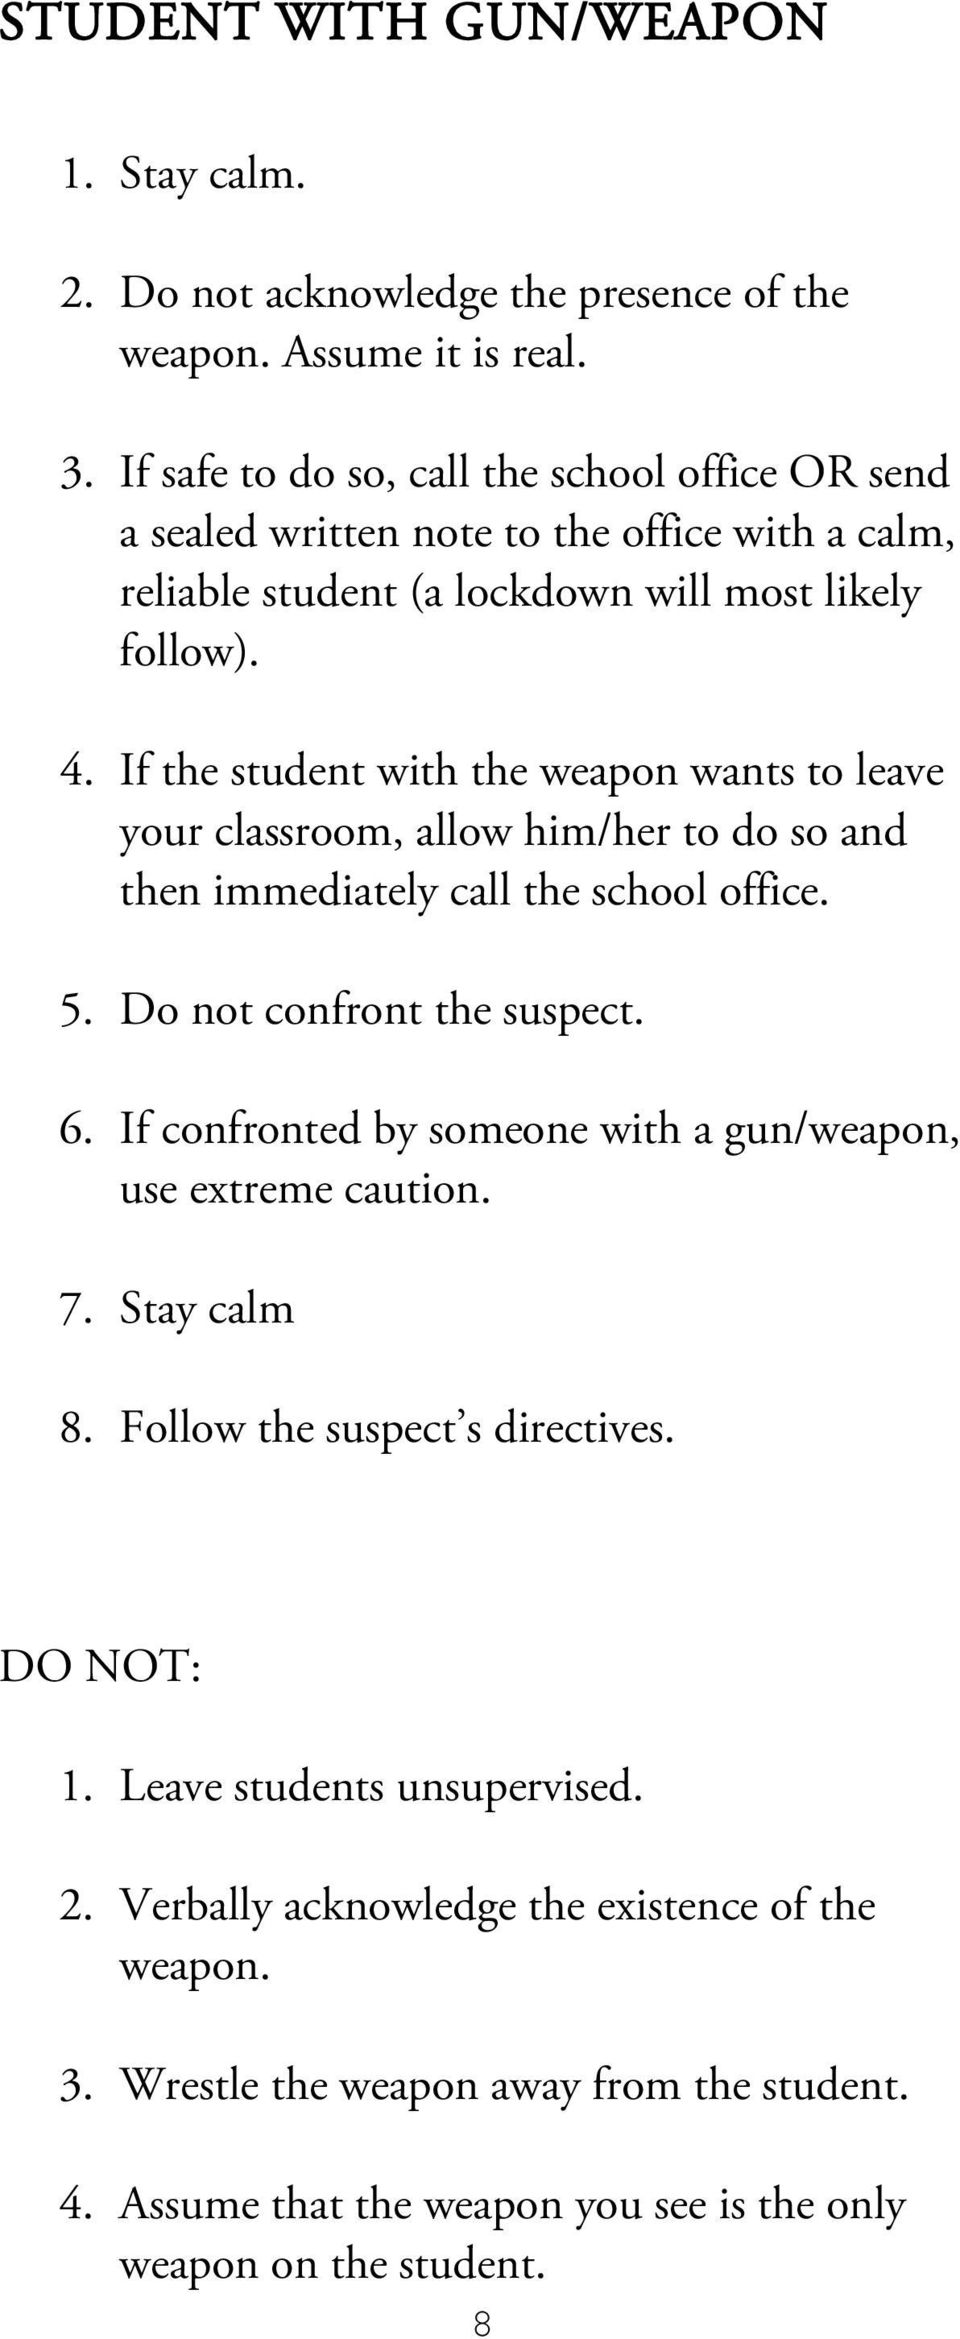 If the student with the weapon wants to leave your classroom, allow him/her to do so and then immediately call the school office. 5. Do not confront the suspect. 6.